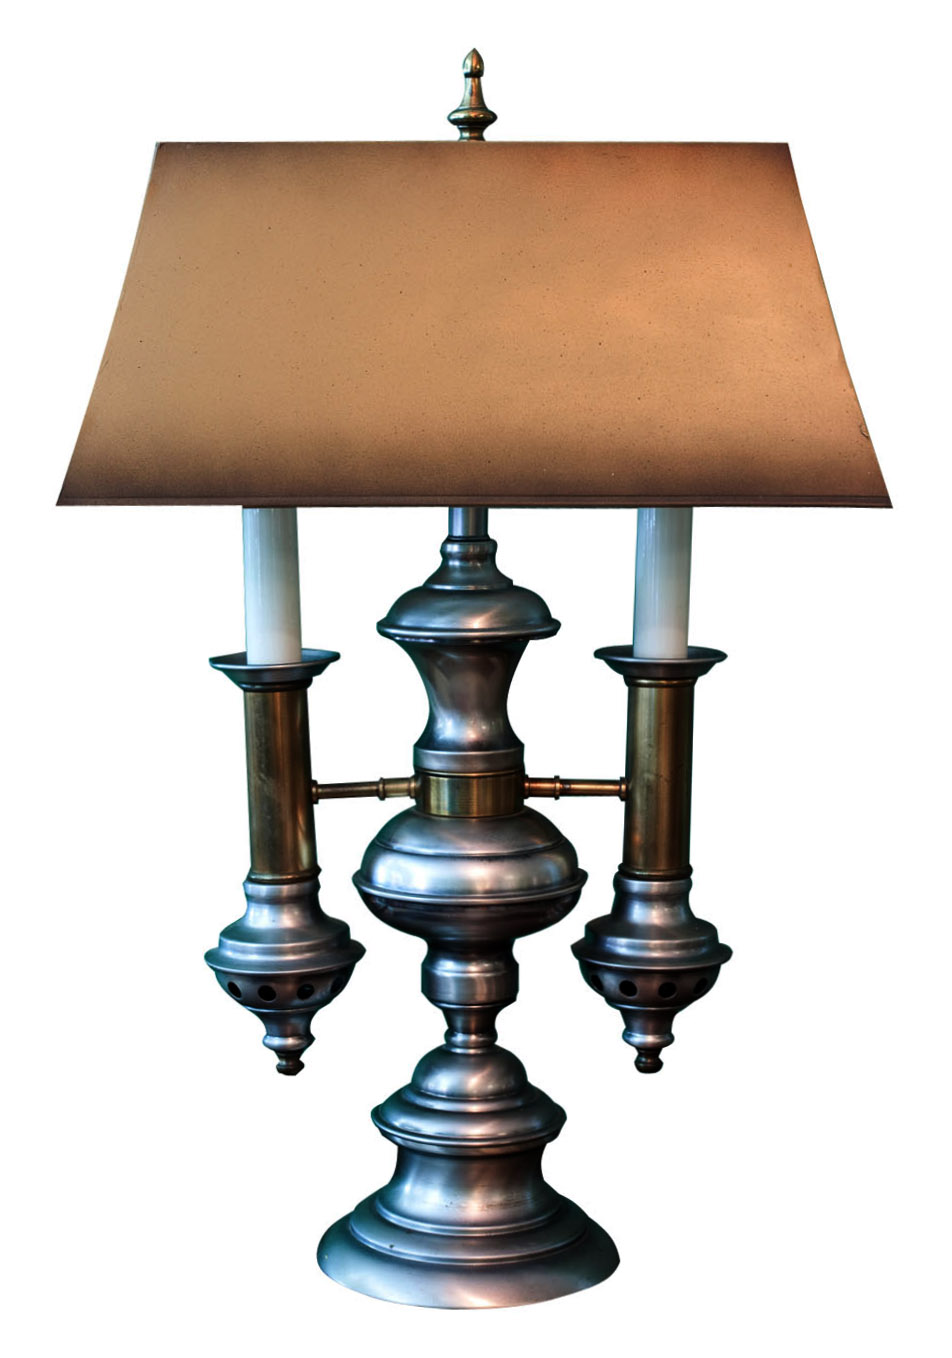 Victorian Revival Desk Lamp In Pewter Finish With Tole Shade